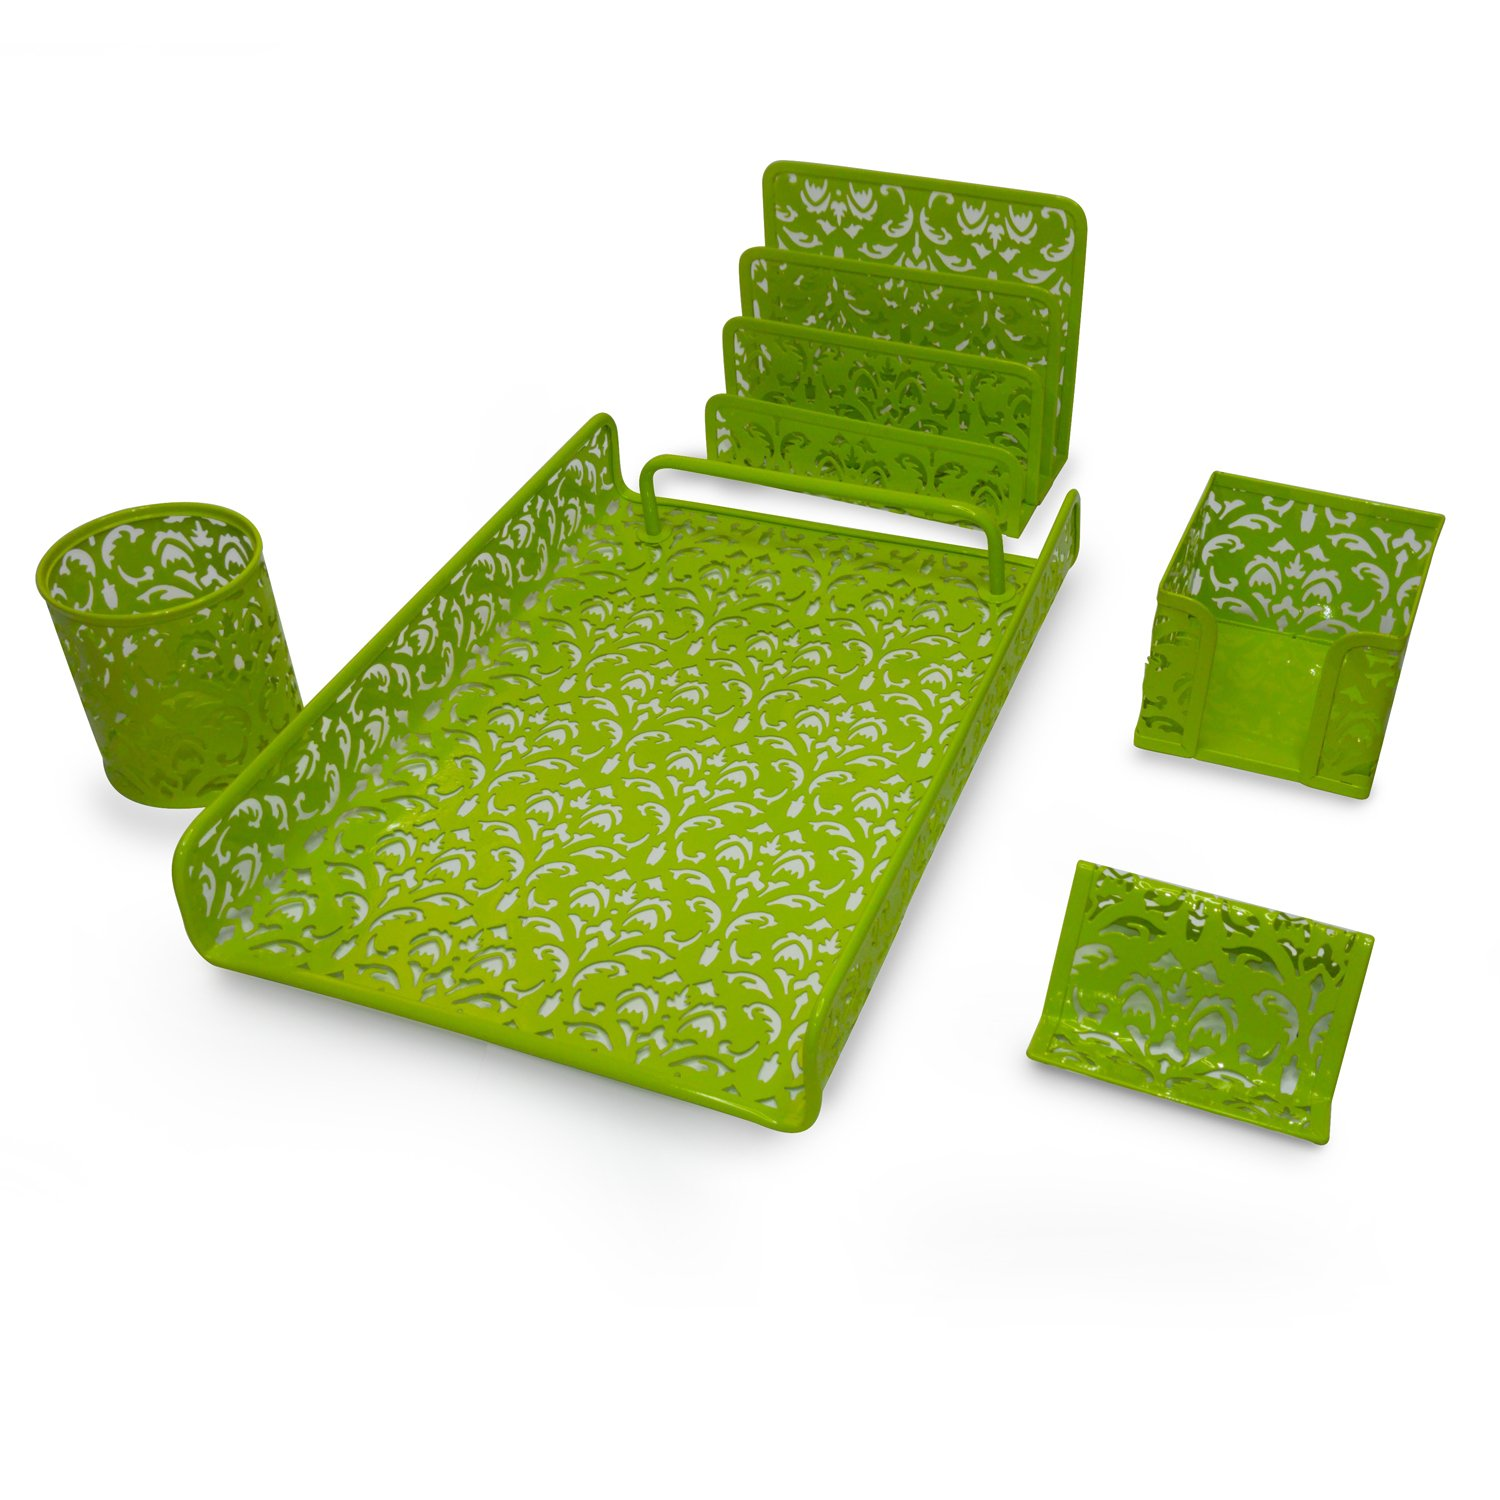 Majestic Goods 5 Piece Flower Design Punched Metal Mesh Office Desk Accessories Organizer, Green, (Pack of 5) - MG505-JM3622GRN